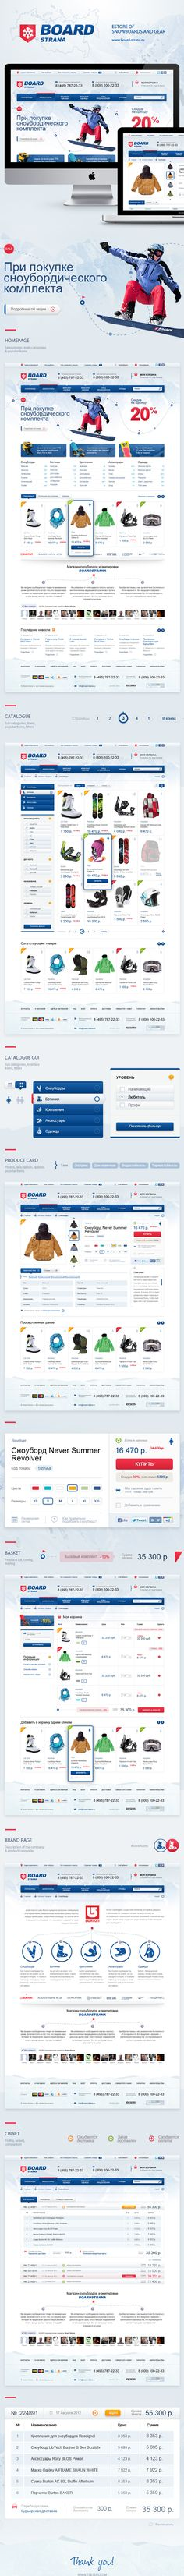 Estore of snowboards and gear